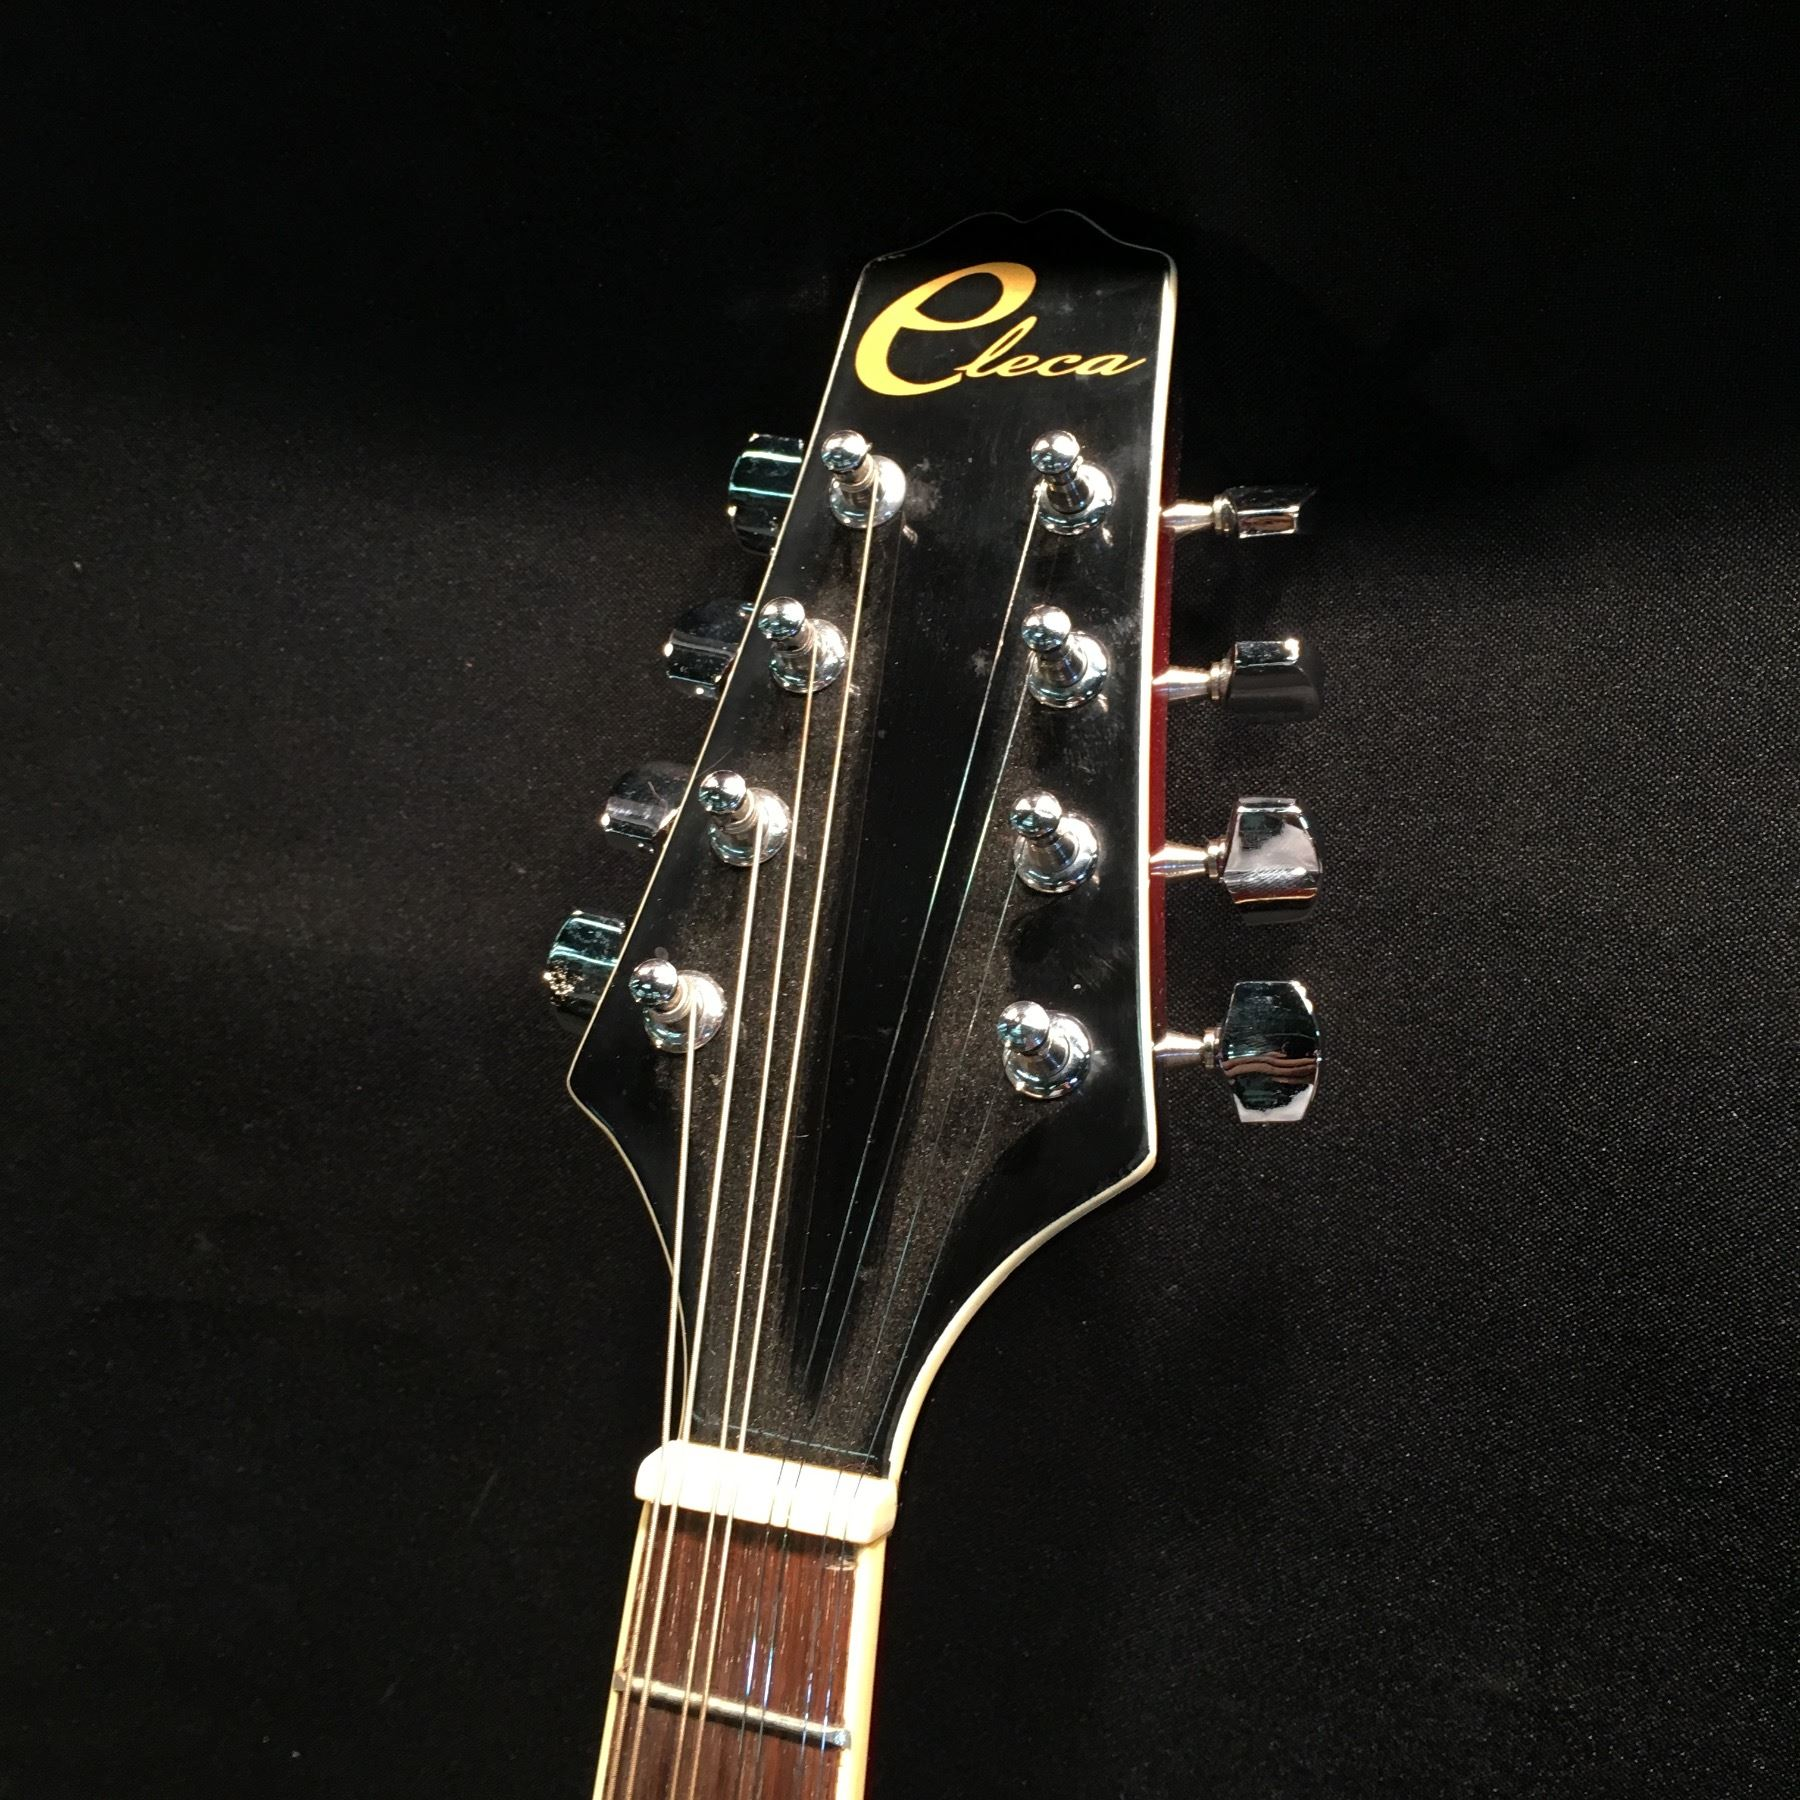 Fantastic Three Way Switch Guitar Thin Hh 5 Way Switch Wiring Solid Car Alarm Installation Wiring Diagram Bulldog Security Remote Vehicle Starter System Youthful Dimarzio Push Pull Pot WhiteIbanez Guitar Pickups ELECA MODEL EMA 3 ELECTRIC MANDOLIN, WITH SINGLE COIL PICKUP ..